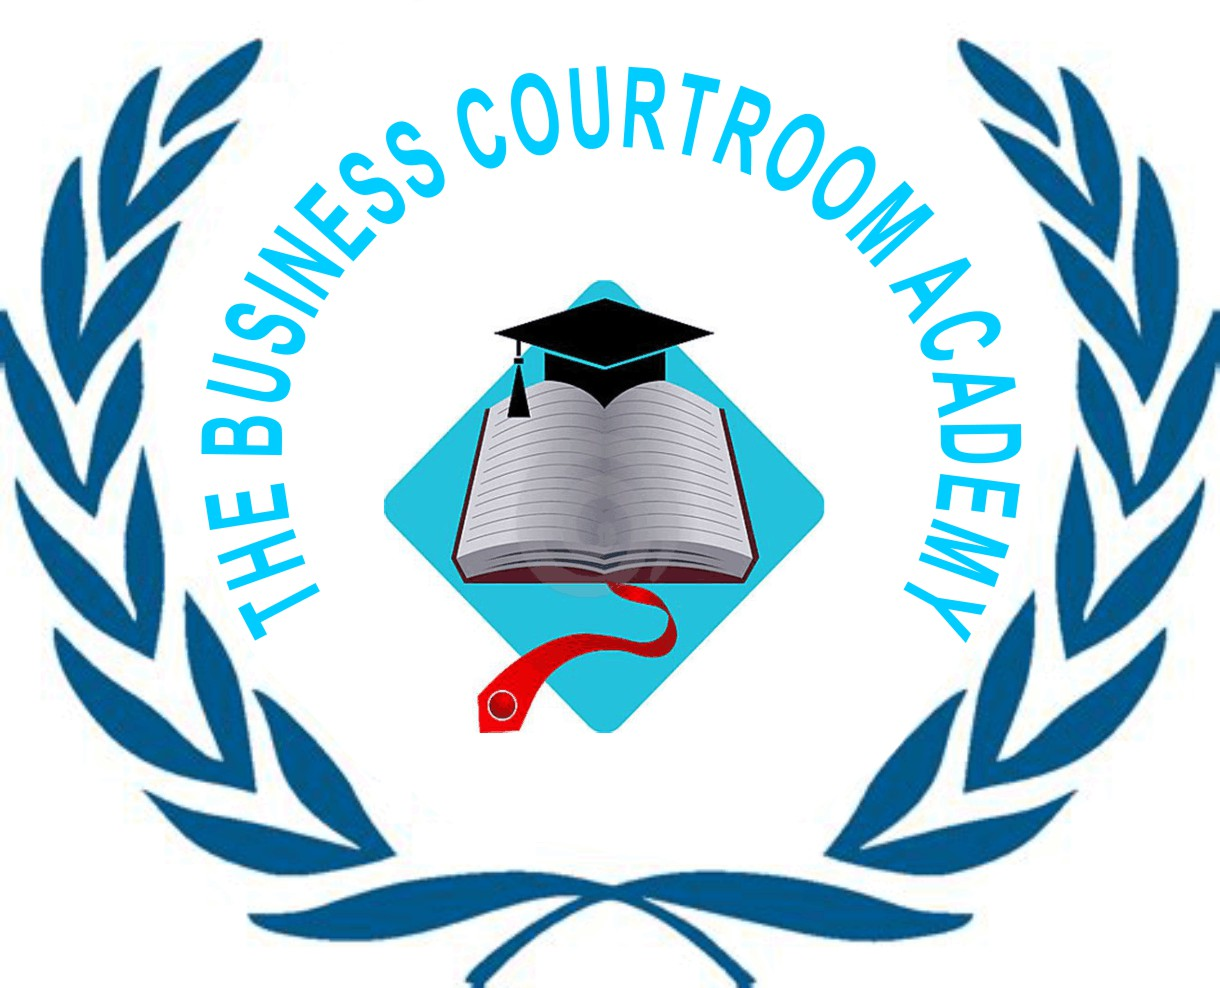 The Business Courtroom Academy